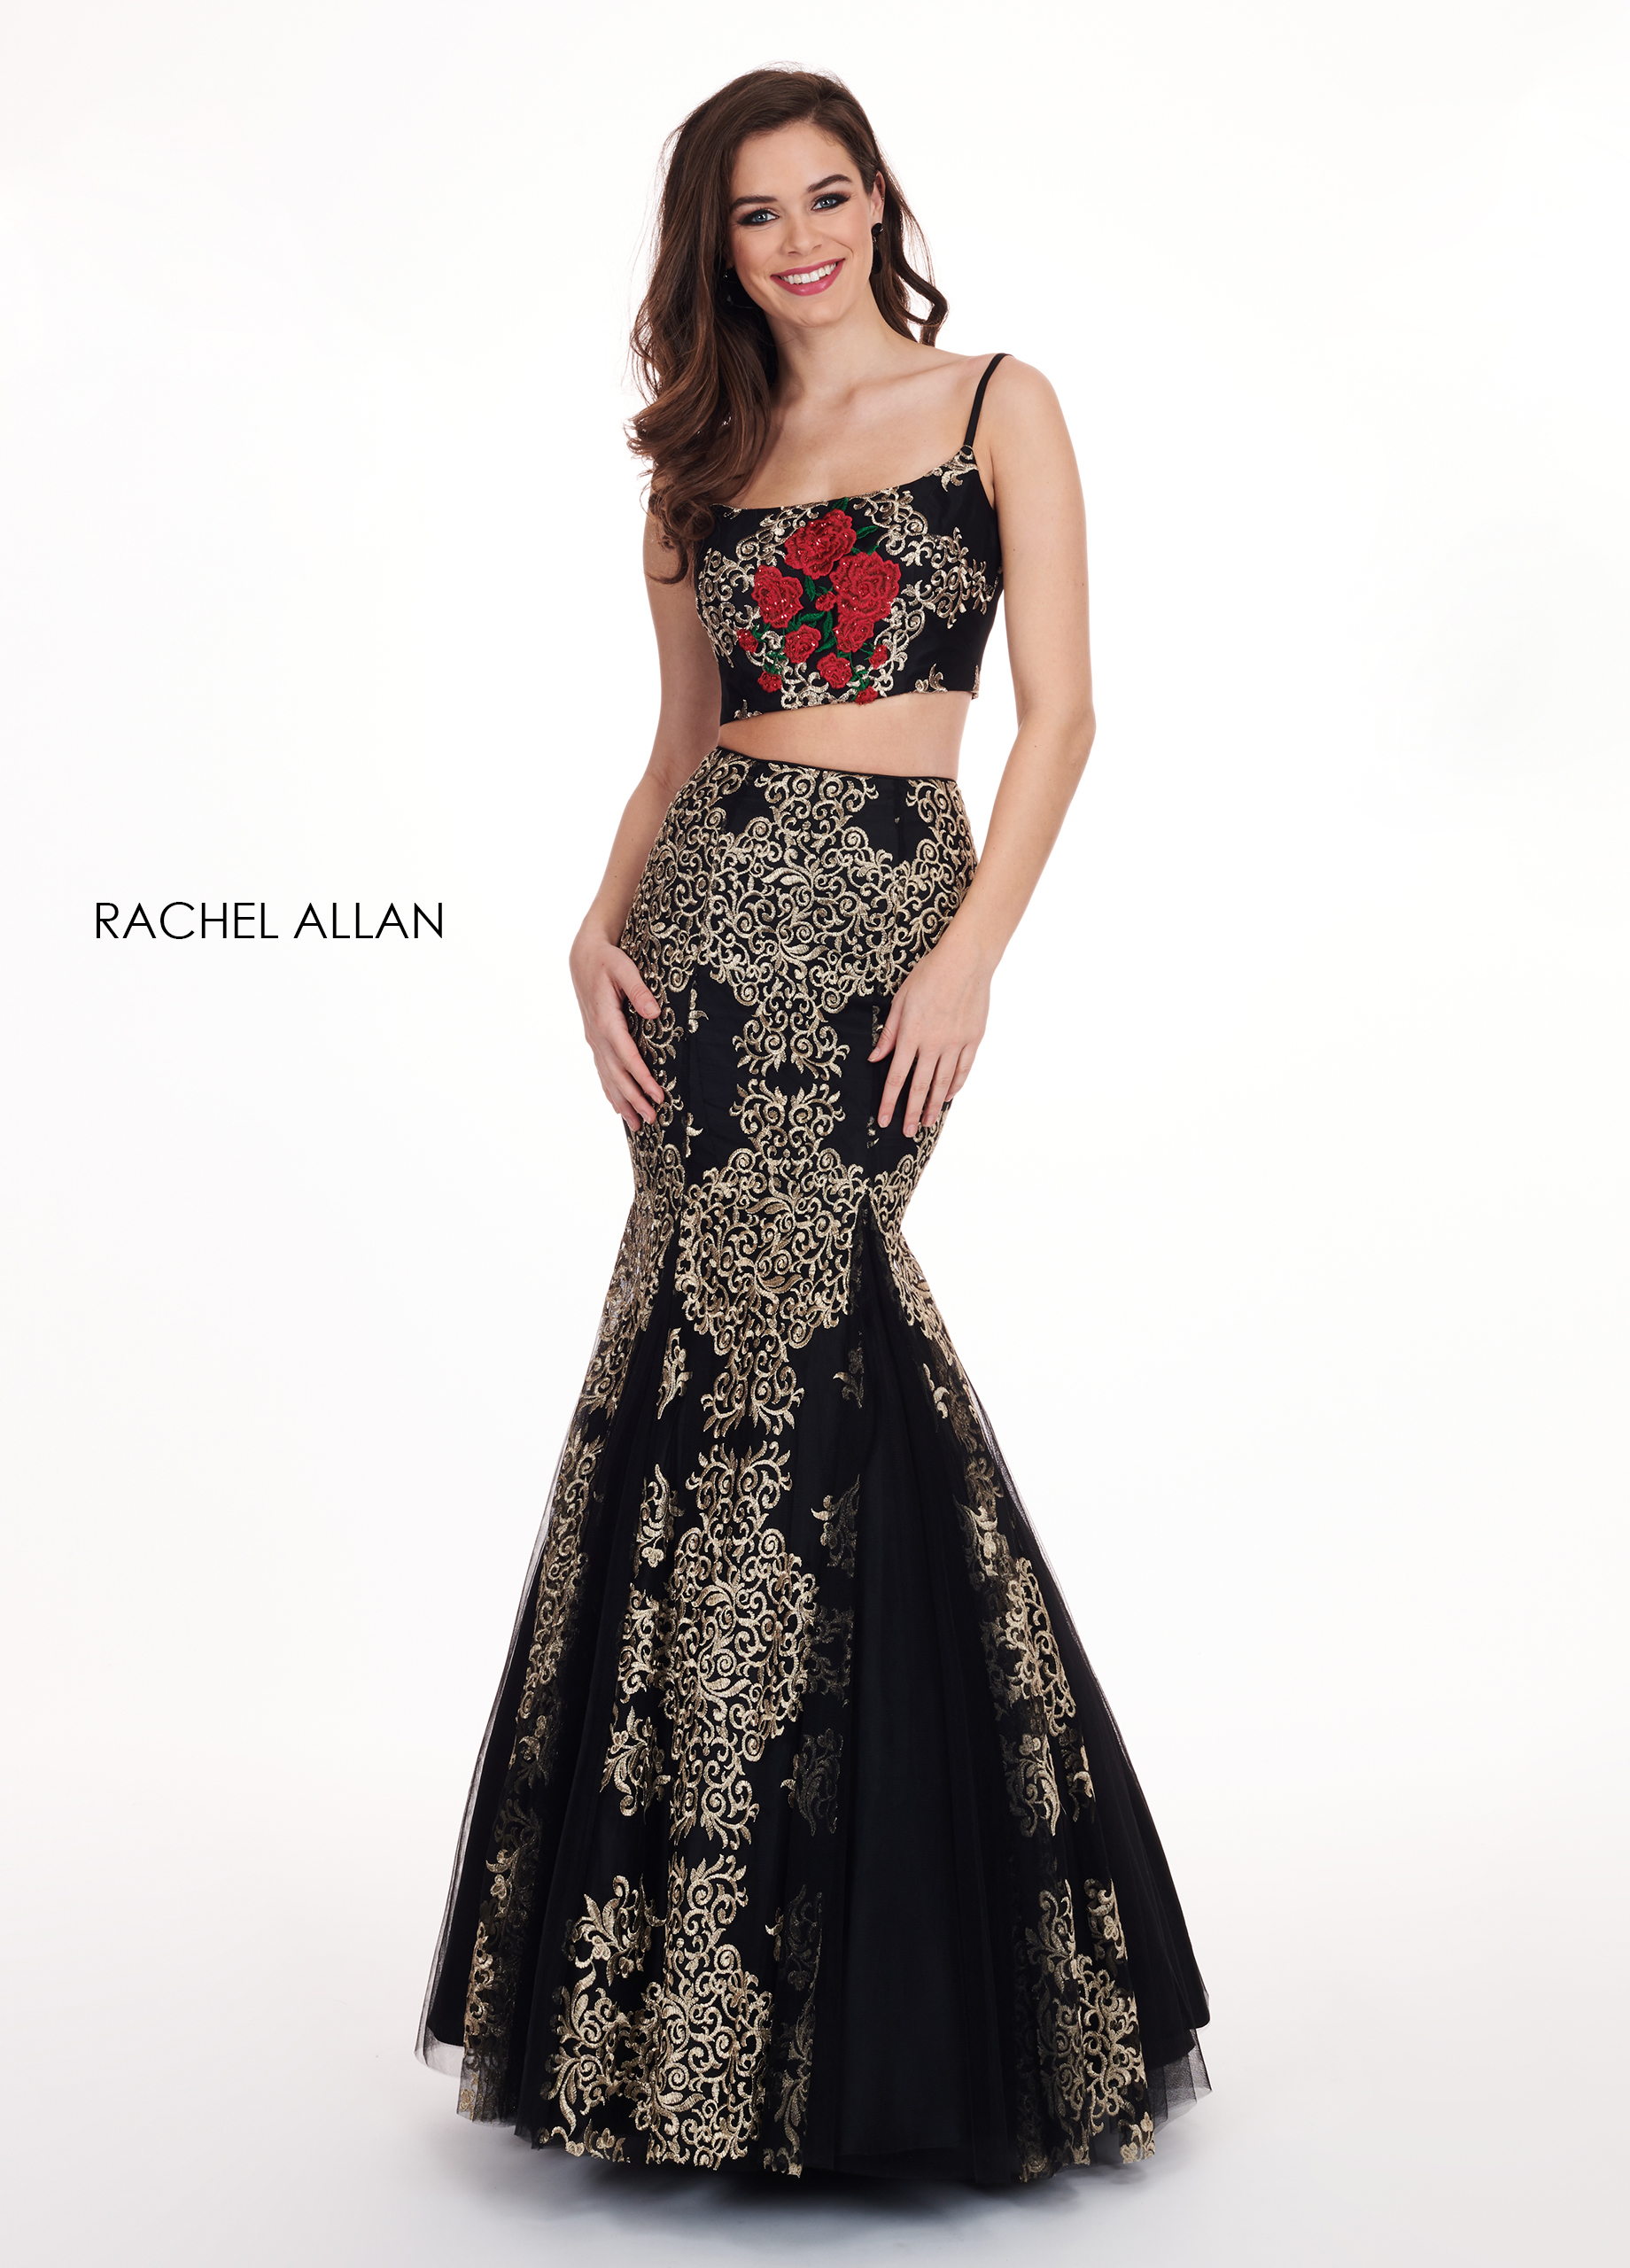 Scoop Neck Two-Piece Prom Dresses in Black Color